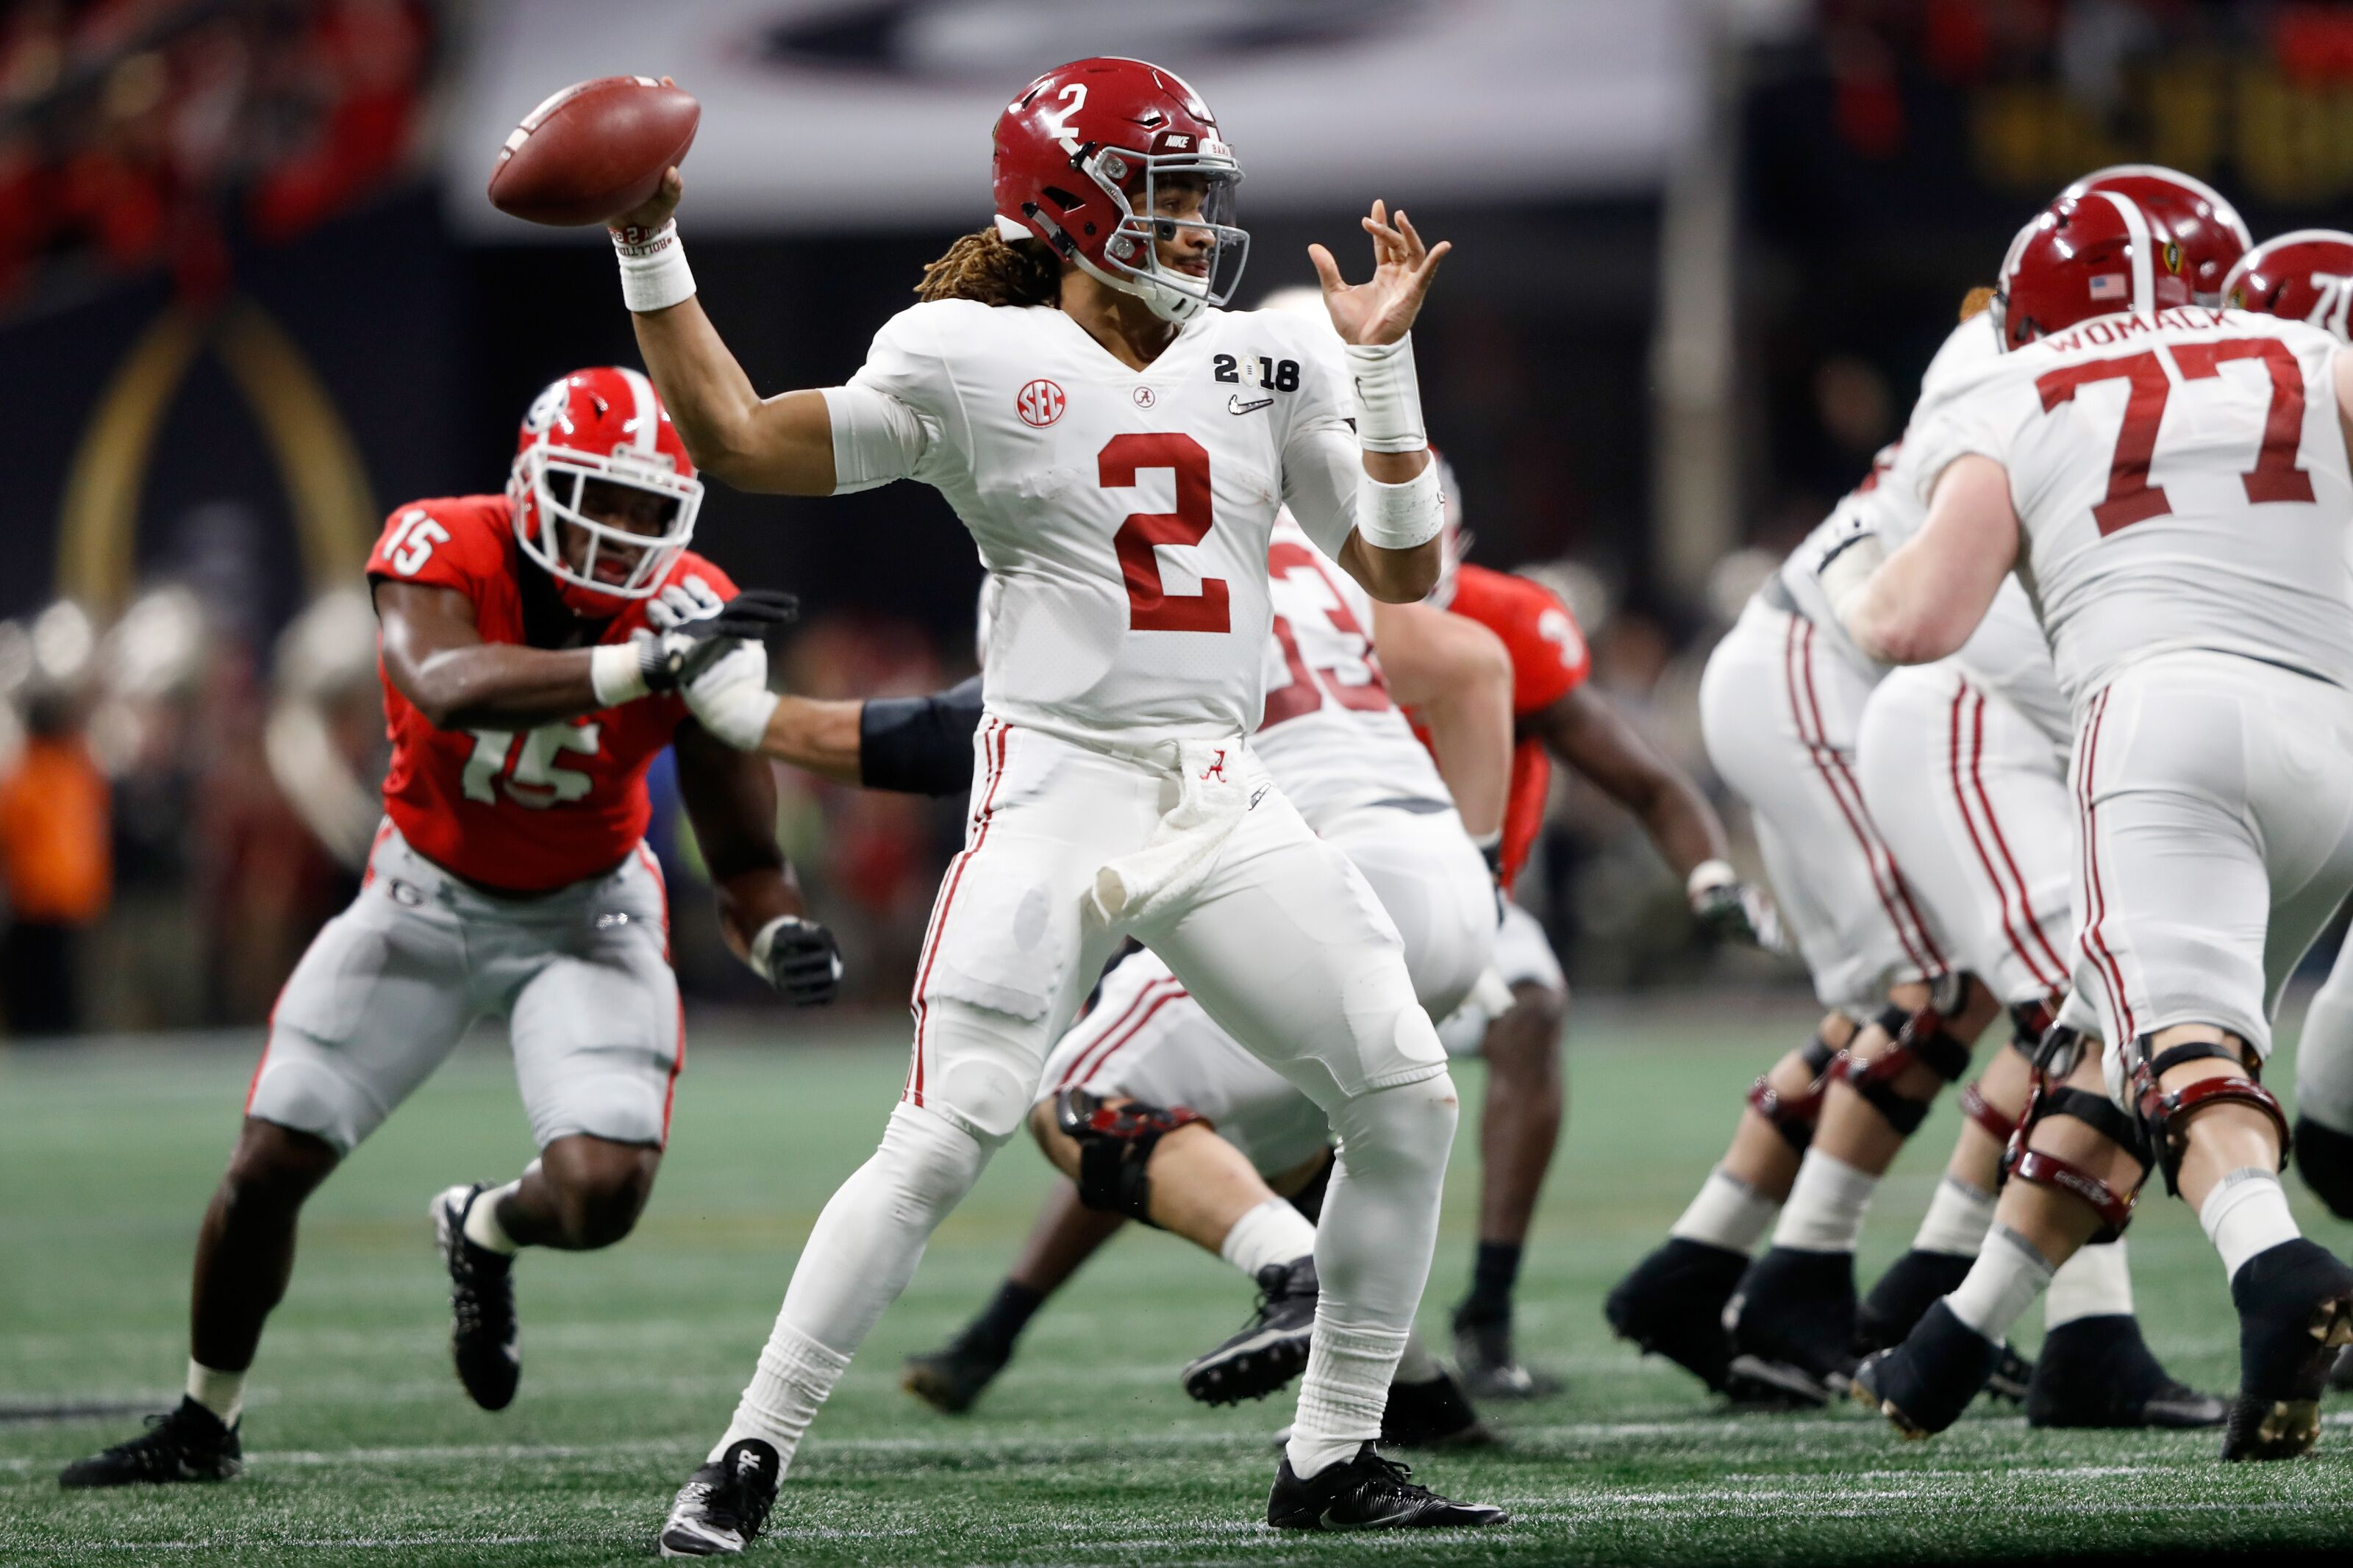 902755336-cfp-national-championship-presented-by-at.jpg